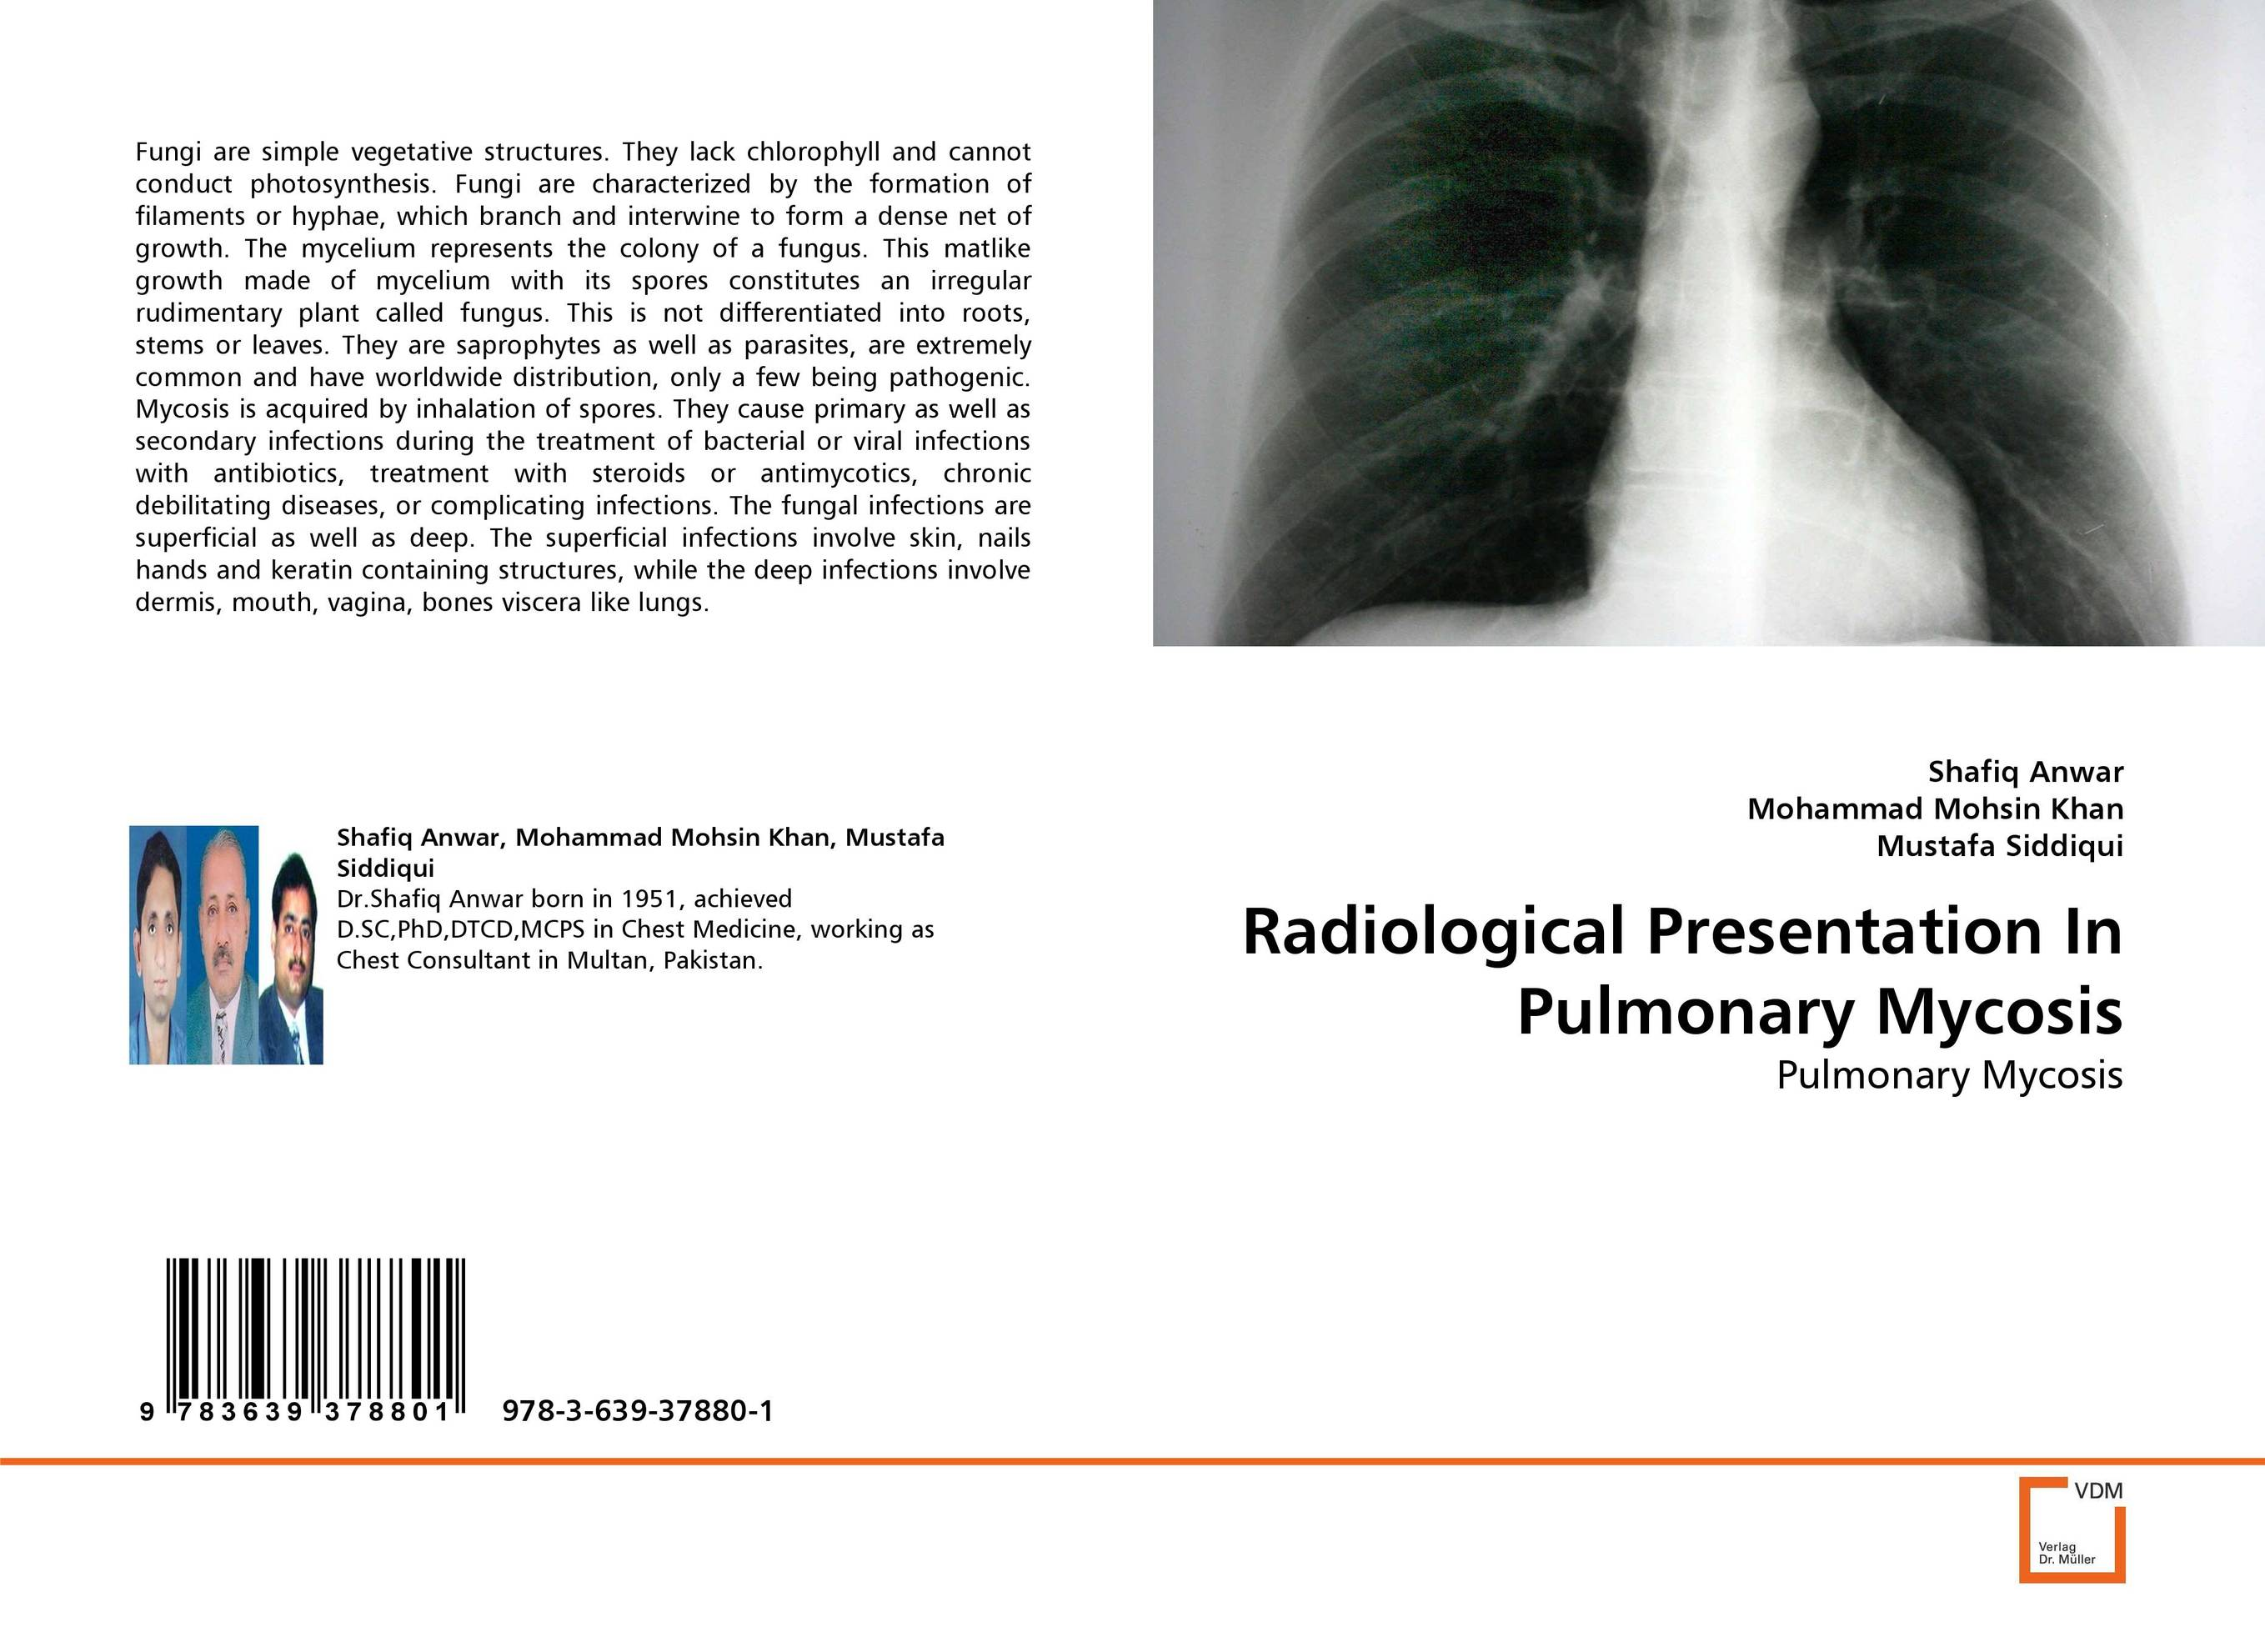 Radiological Presentation In Pulmonary Mycosis seeing things as they are